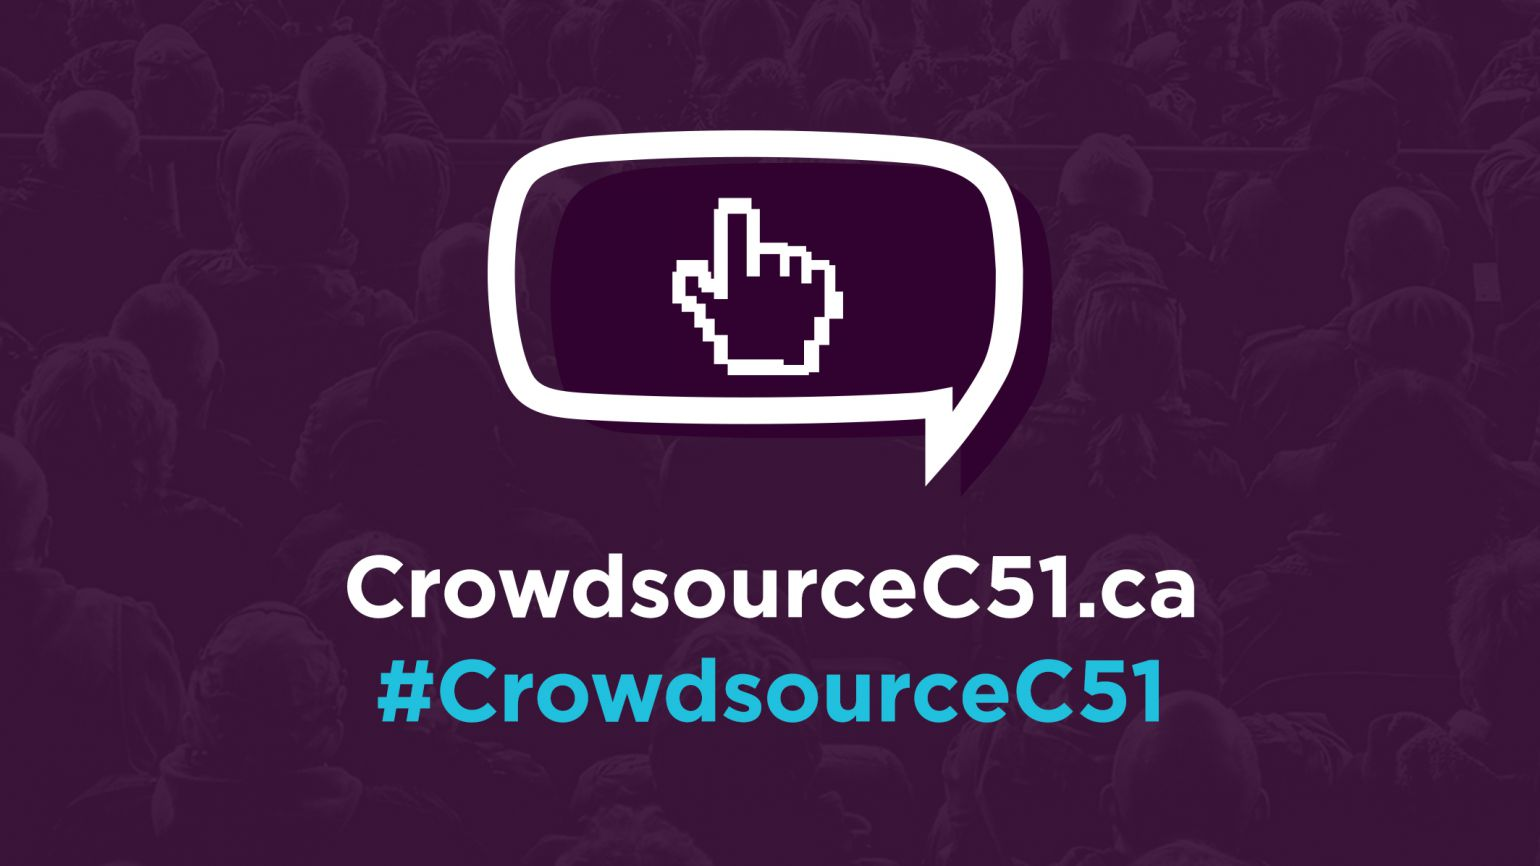 CrowdsourceC51.ca